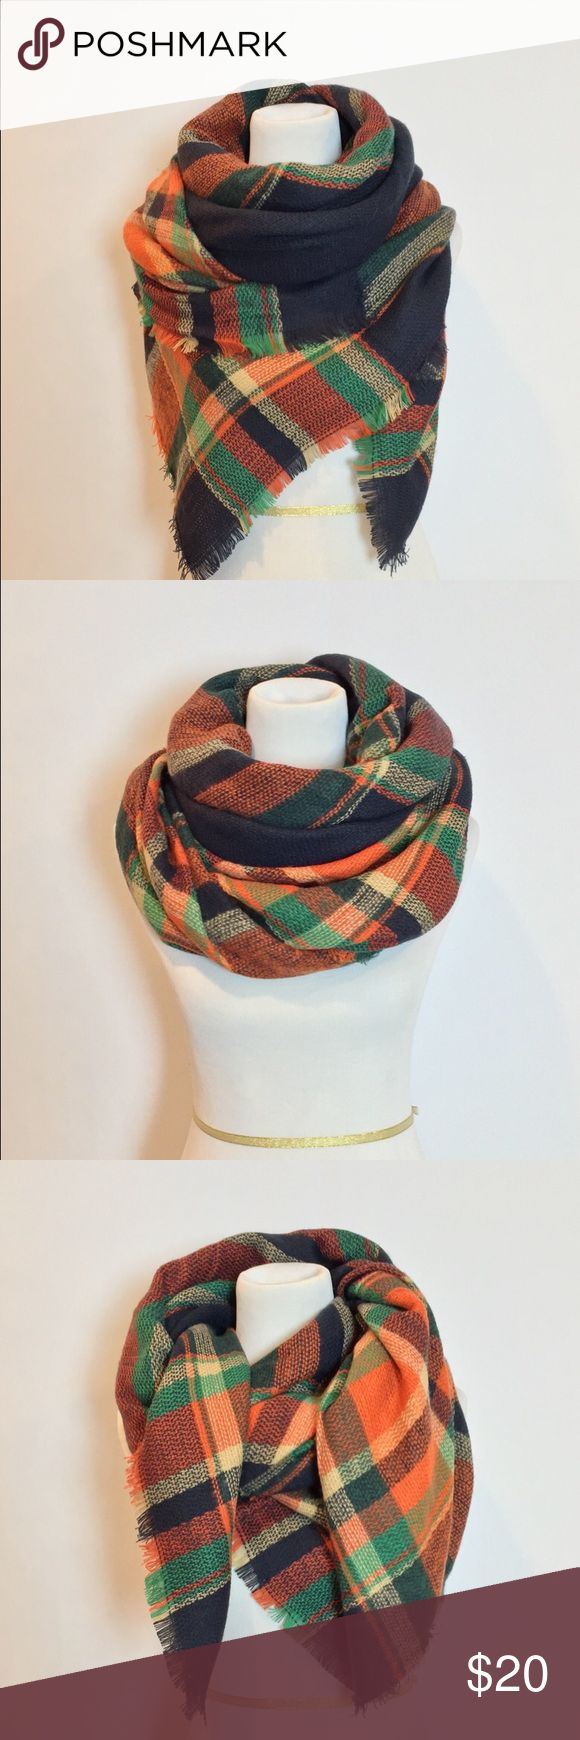 """Zara Oversized Plaid Tartan Blanket Scarf Stay cozy and comfortable this season with this beautiful oversized blanket scarf. Made from high quality, medium weight, soft fabric, this scarf will keep you warm all season long.  Cut wide & extra long to allow for even more layering & styling opportunities. This piece is finished with fringed edges for an added bohemian & vintage touch. Approximately 52""""x 52"""". Made out of a Acrylic cotton blend. NWOT! Zara Accessories Scarves & Wraps"""